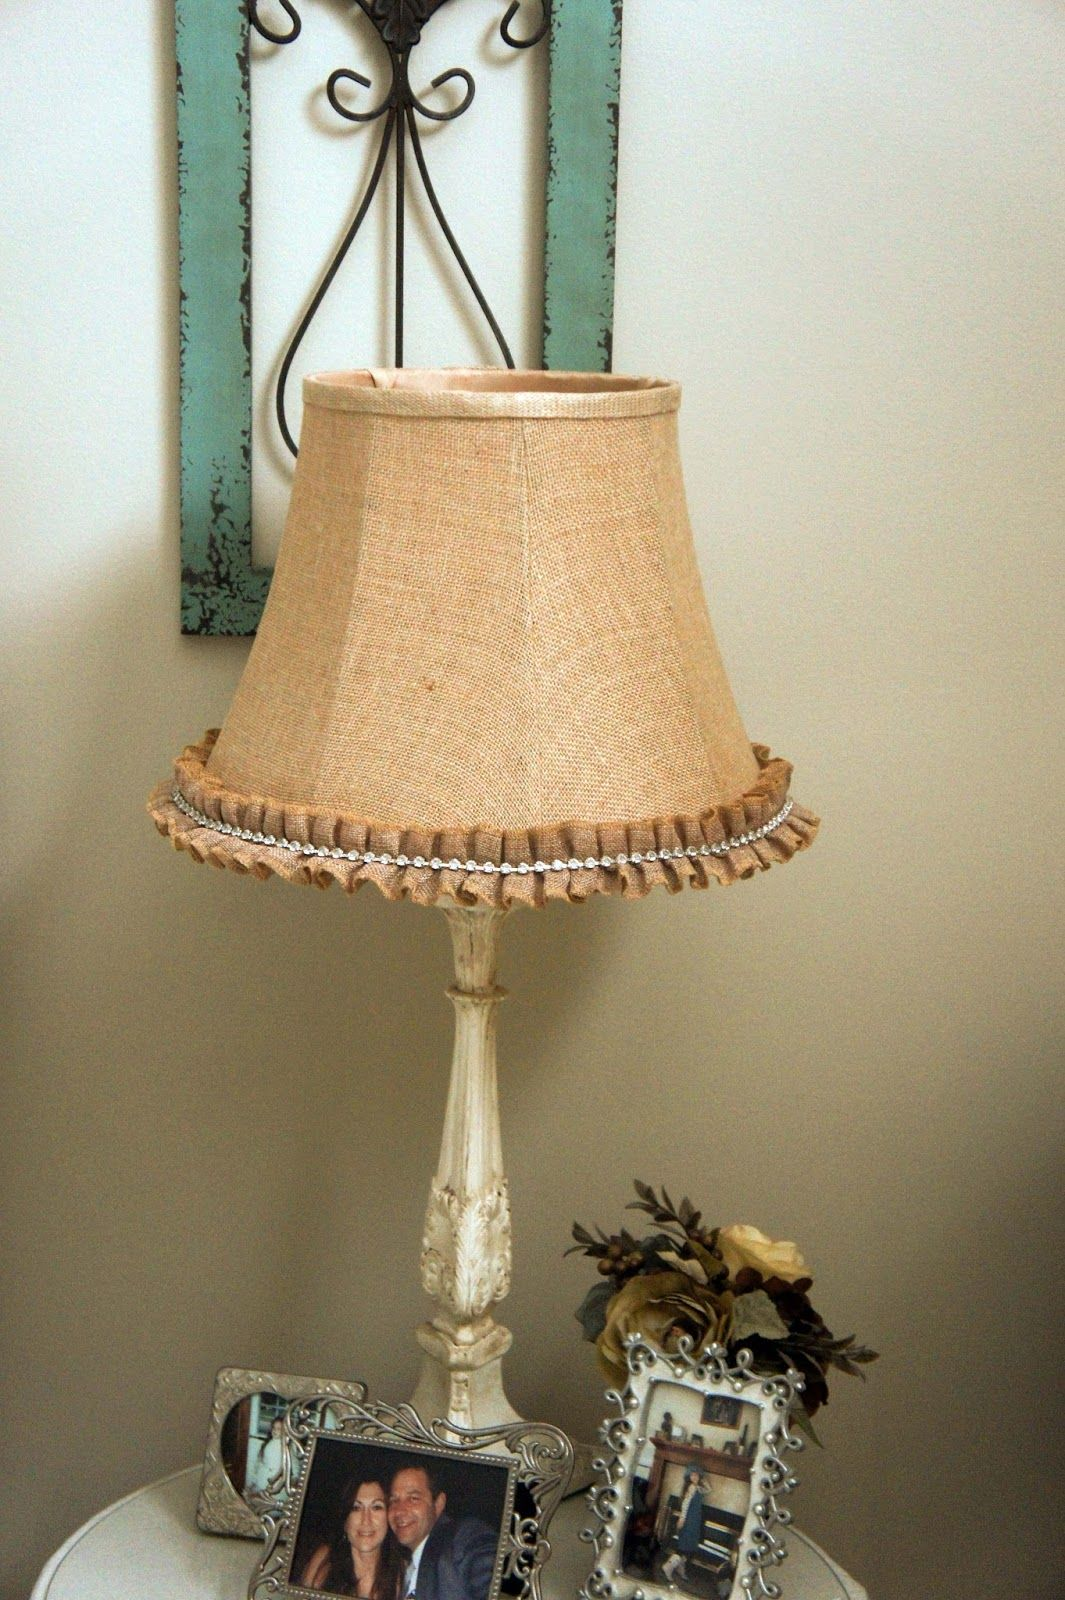 Hobby Lobby Lamp Shades Awesome I Just Saw This Burlaprhinestone Trim At Hobby Lobby Today And Inspiration